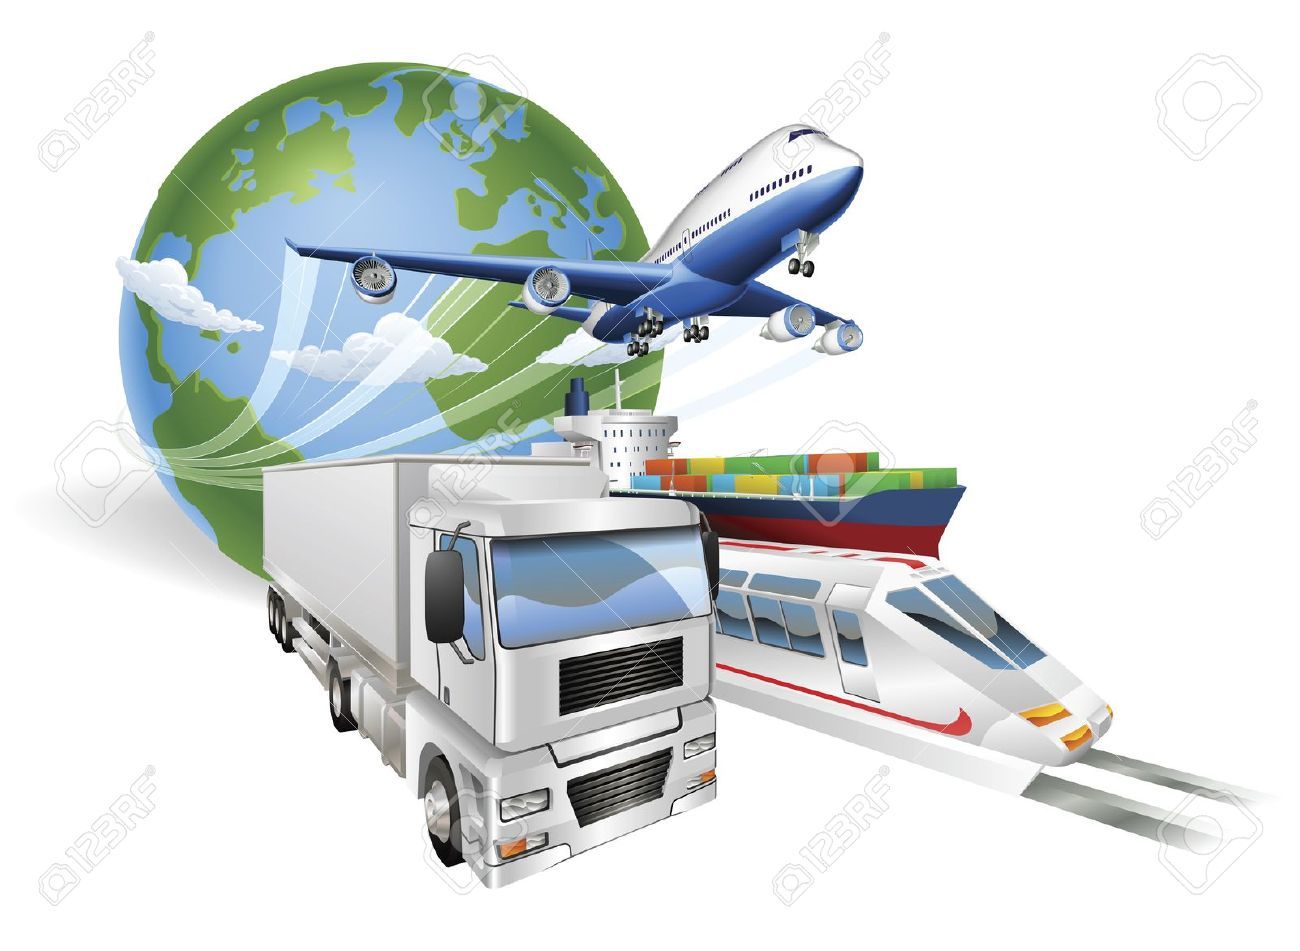 9584534-Global-logistics-concept-illustration-Globe-airplane-aeroplane-truck-tra